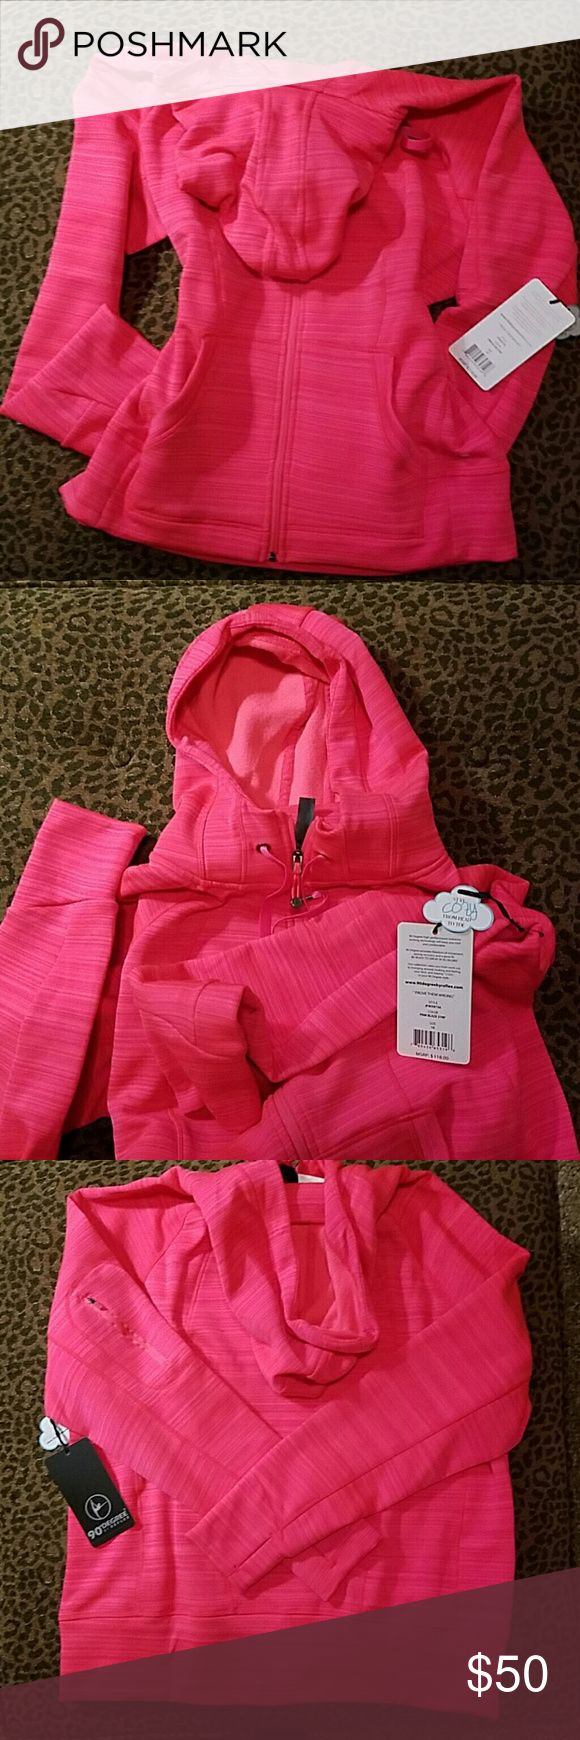 NWT 90 Degree by Reflex Jacket NWT Pink Blaze stripe Stay Cozy Jacket  Adjustable Hoodie  Pockets on the front 1 zippered pockets on the right arm Fleece Lining Polyester and Spandex Thumb pockets on sleeves!:) 90 Degree by Reflex  Jackets & Coats Utility Jackets